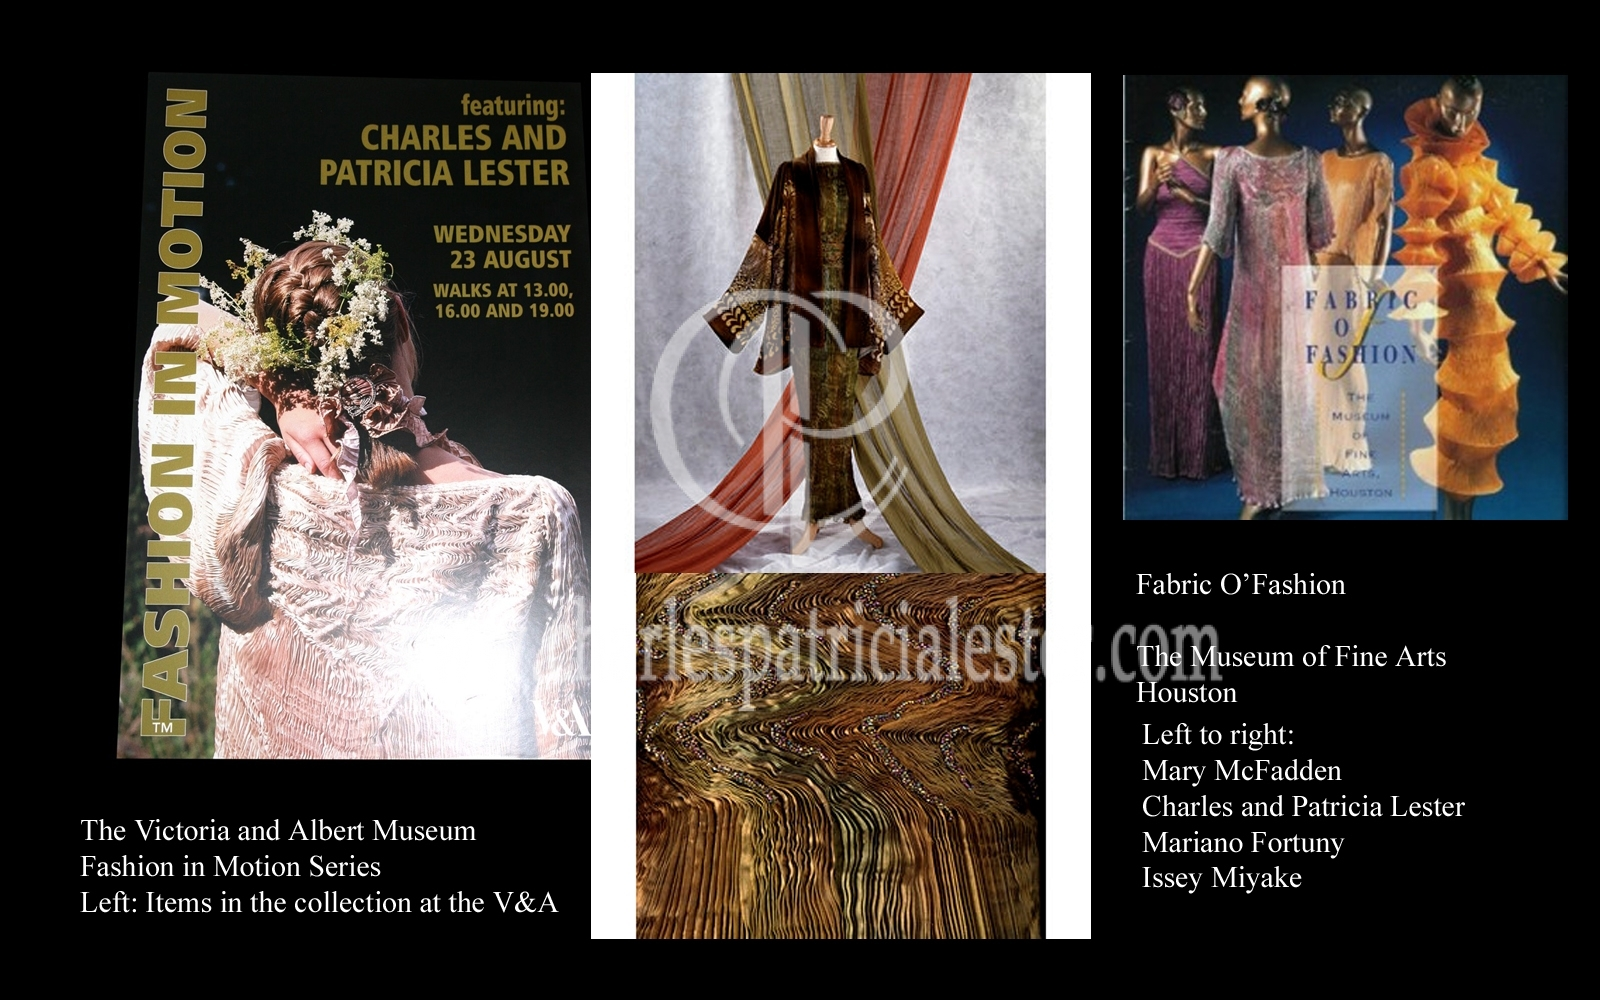 Museums showing luxury textile art